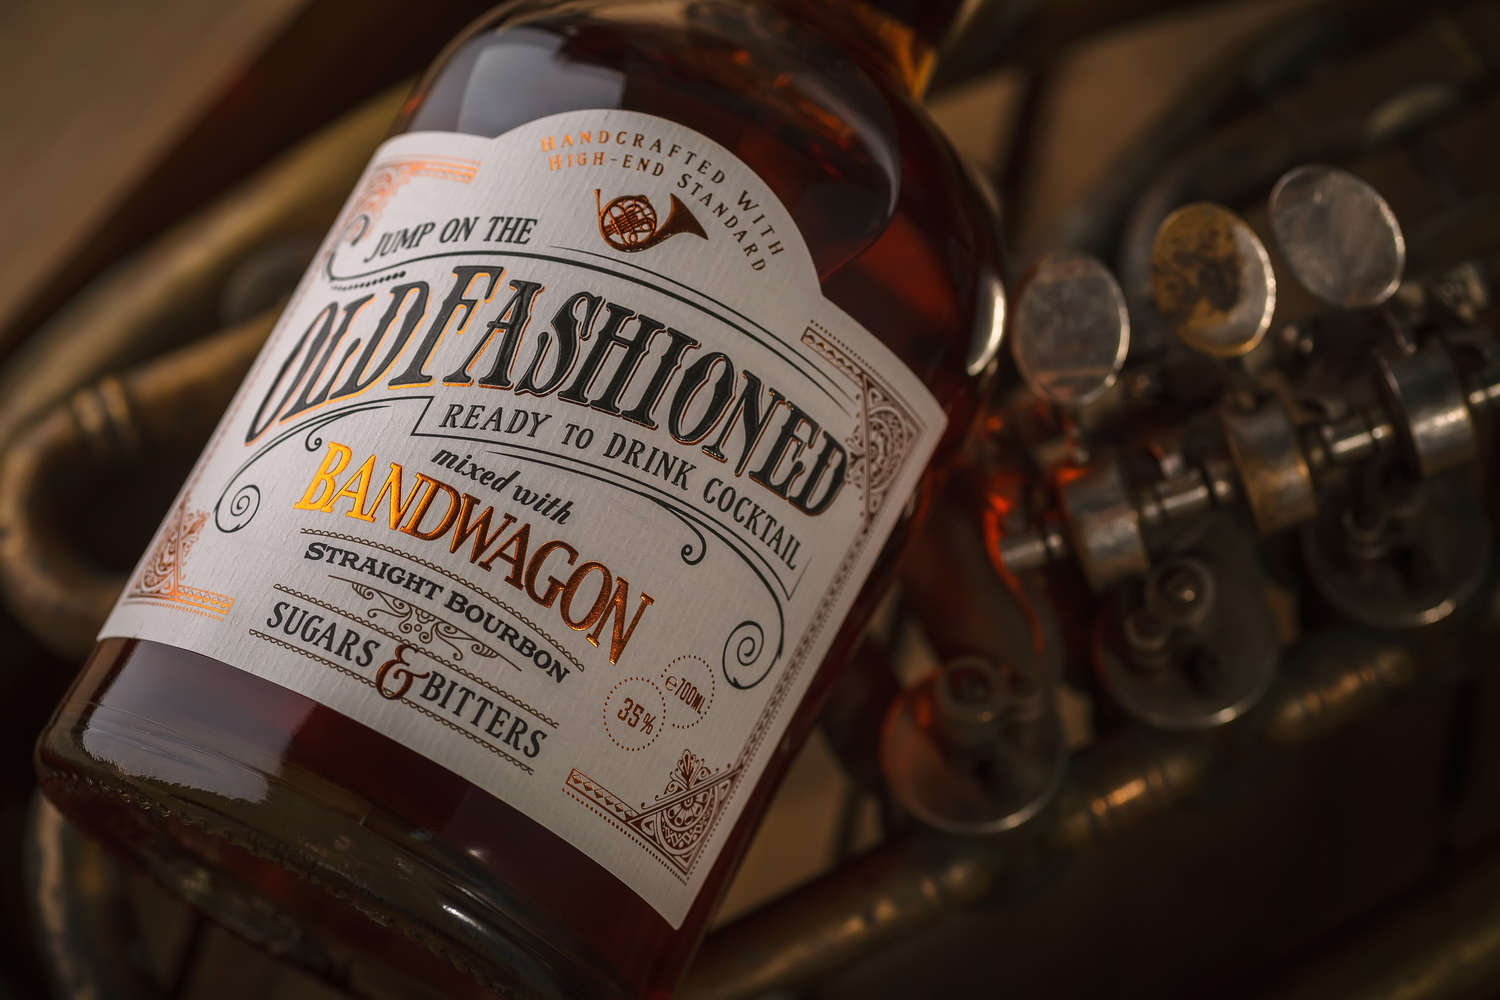 43oz.com - Design Studio - Bandwagon Old Fashioned2.JPG